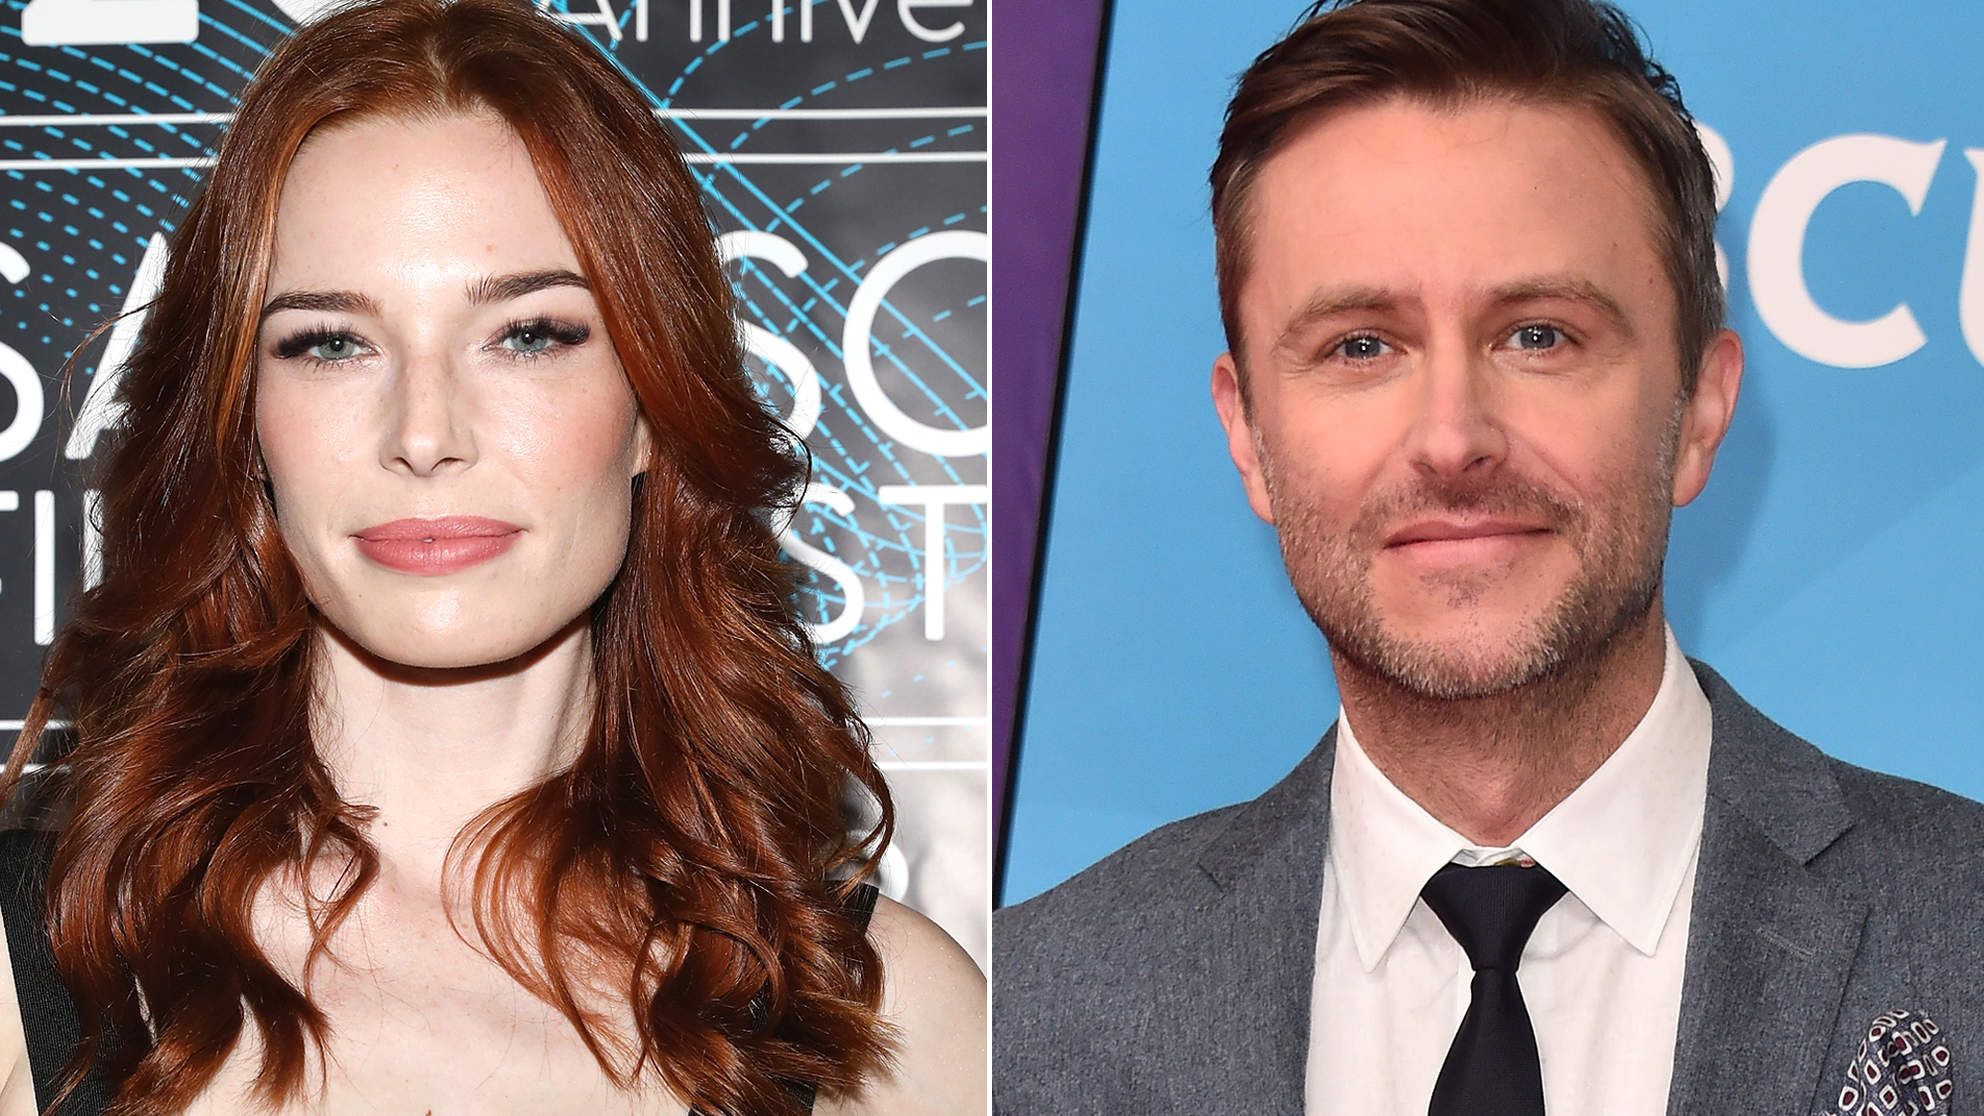 Chris Hardwick's Ex Chloe Dykstra Accuses Unnamed Boyfriend of Sexual Assault, Emotional Abuse